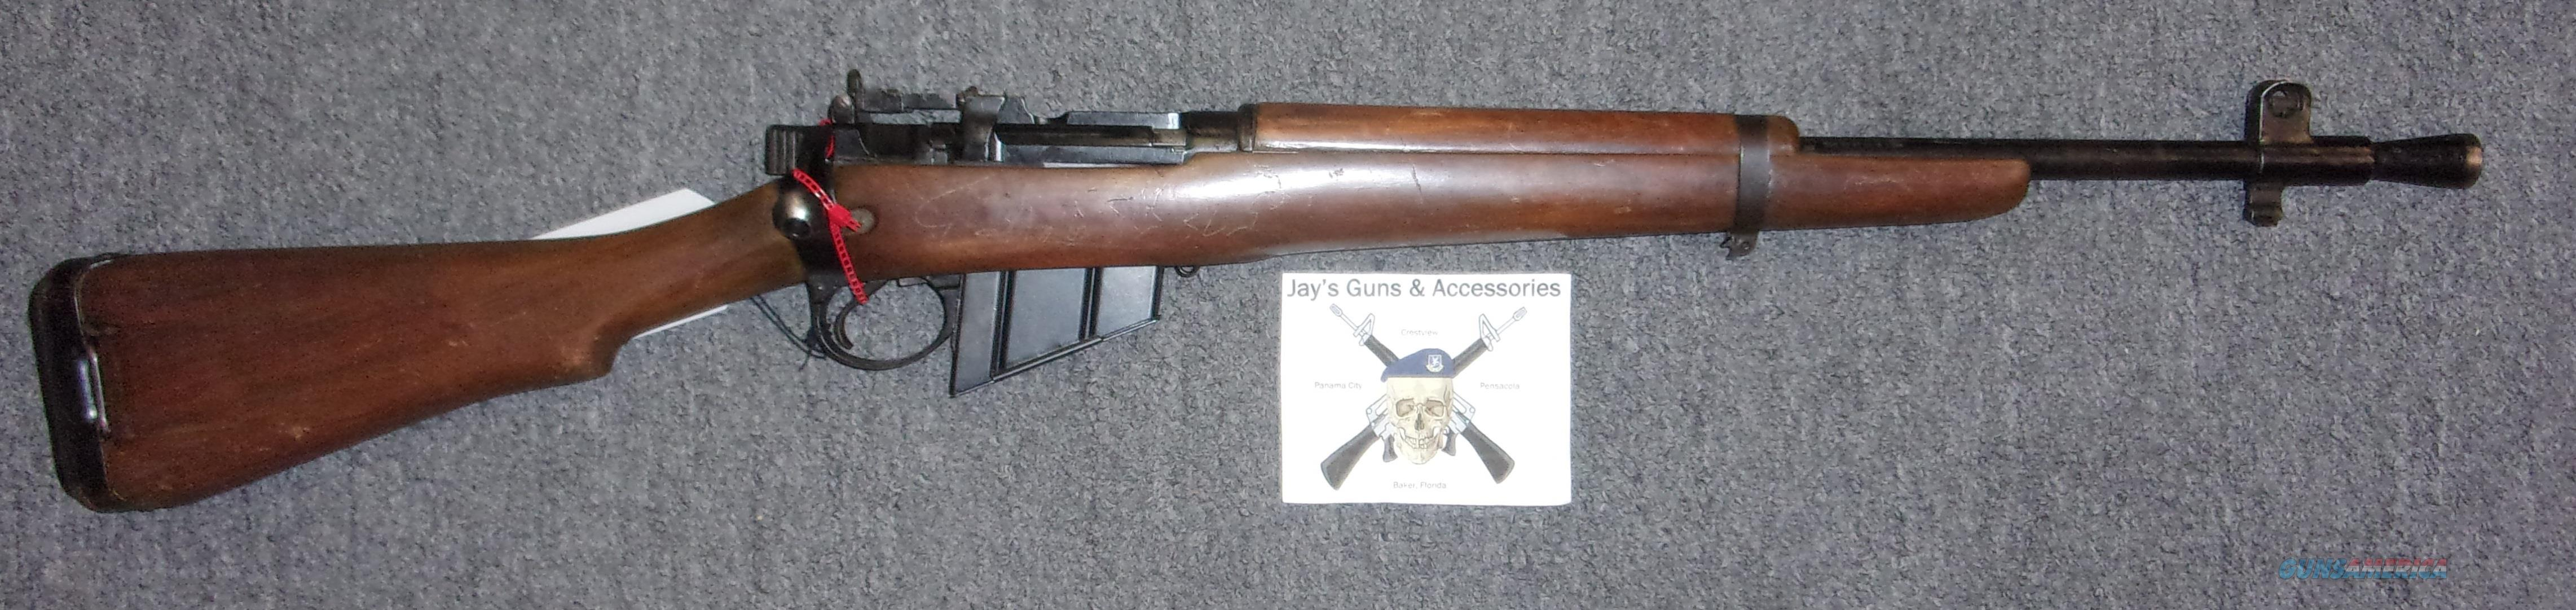 Enfield No. 5 Mk 1 ROF (F) Jungle Carbine  Guns > Rifles > Enfield Rifle